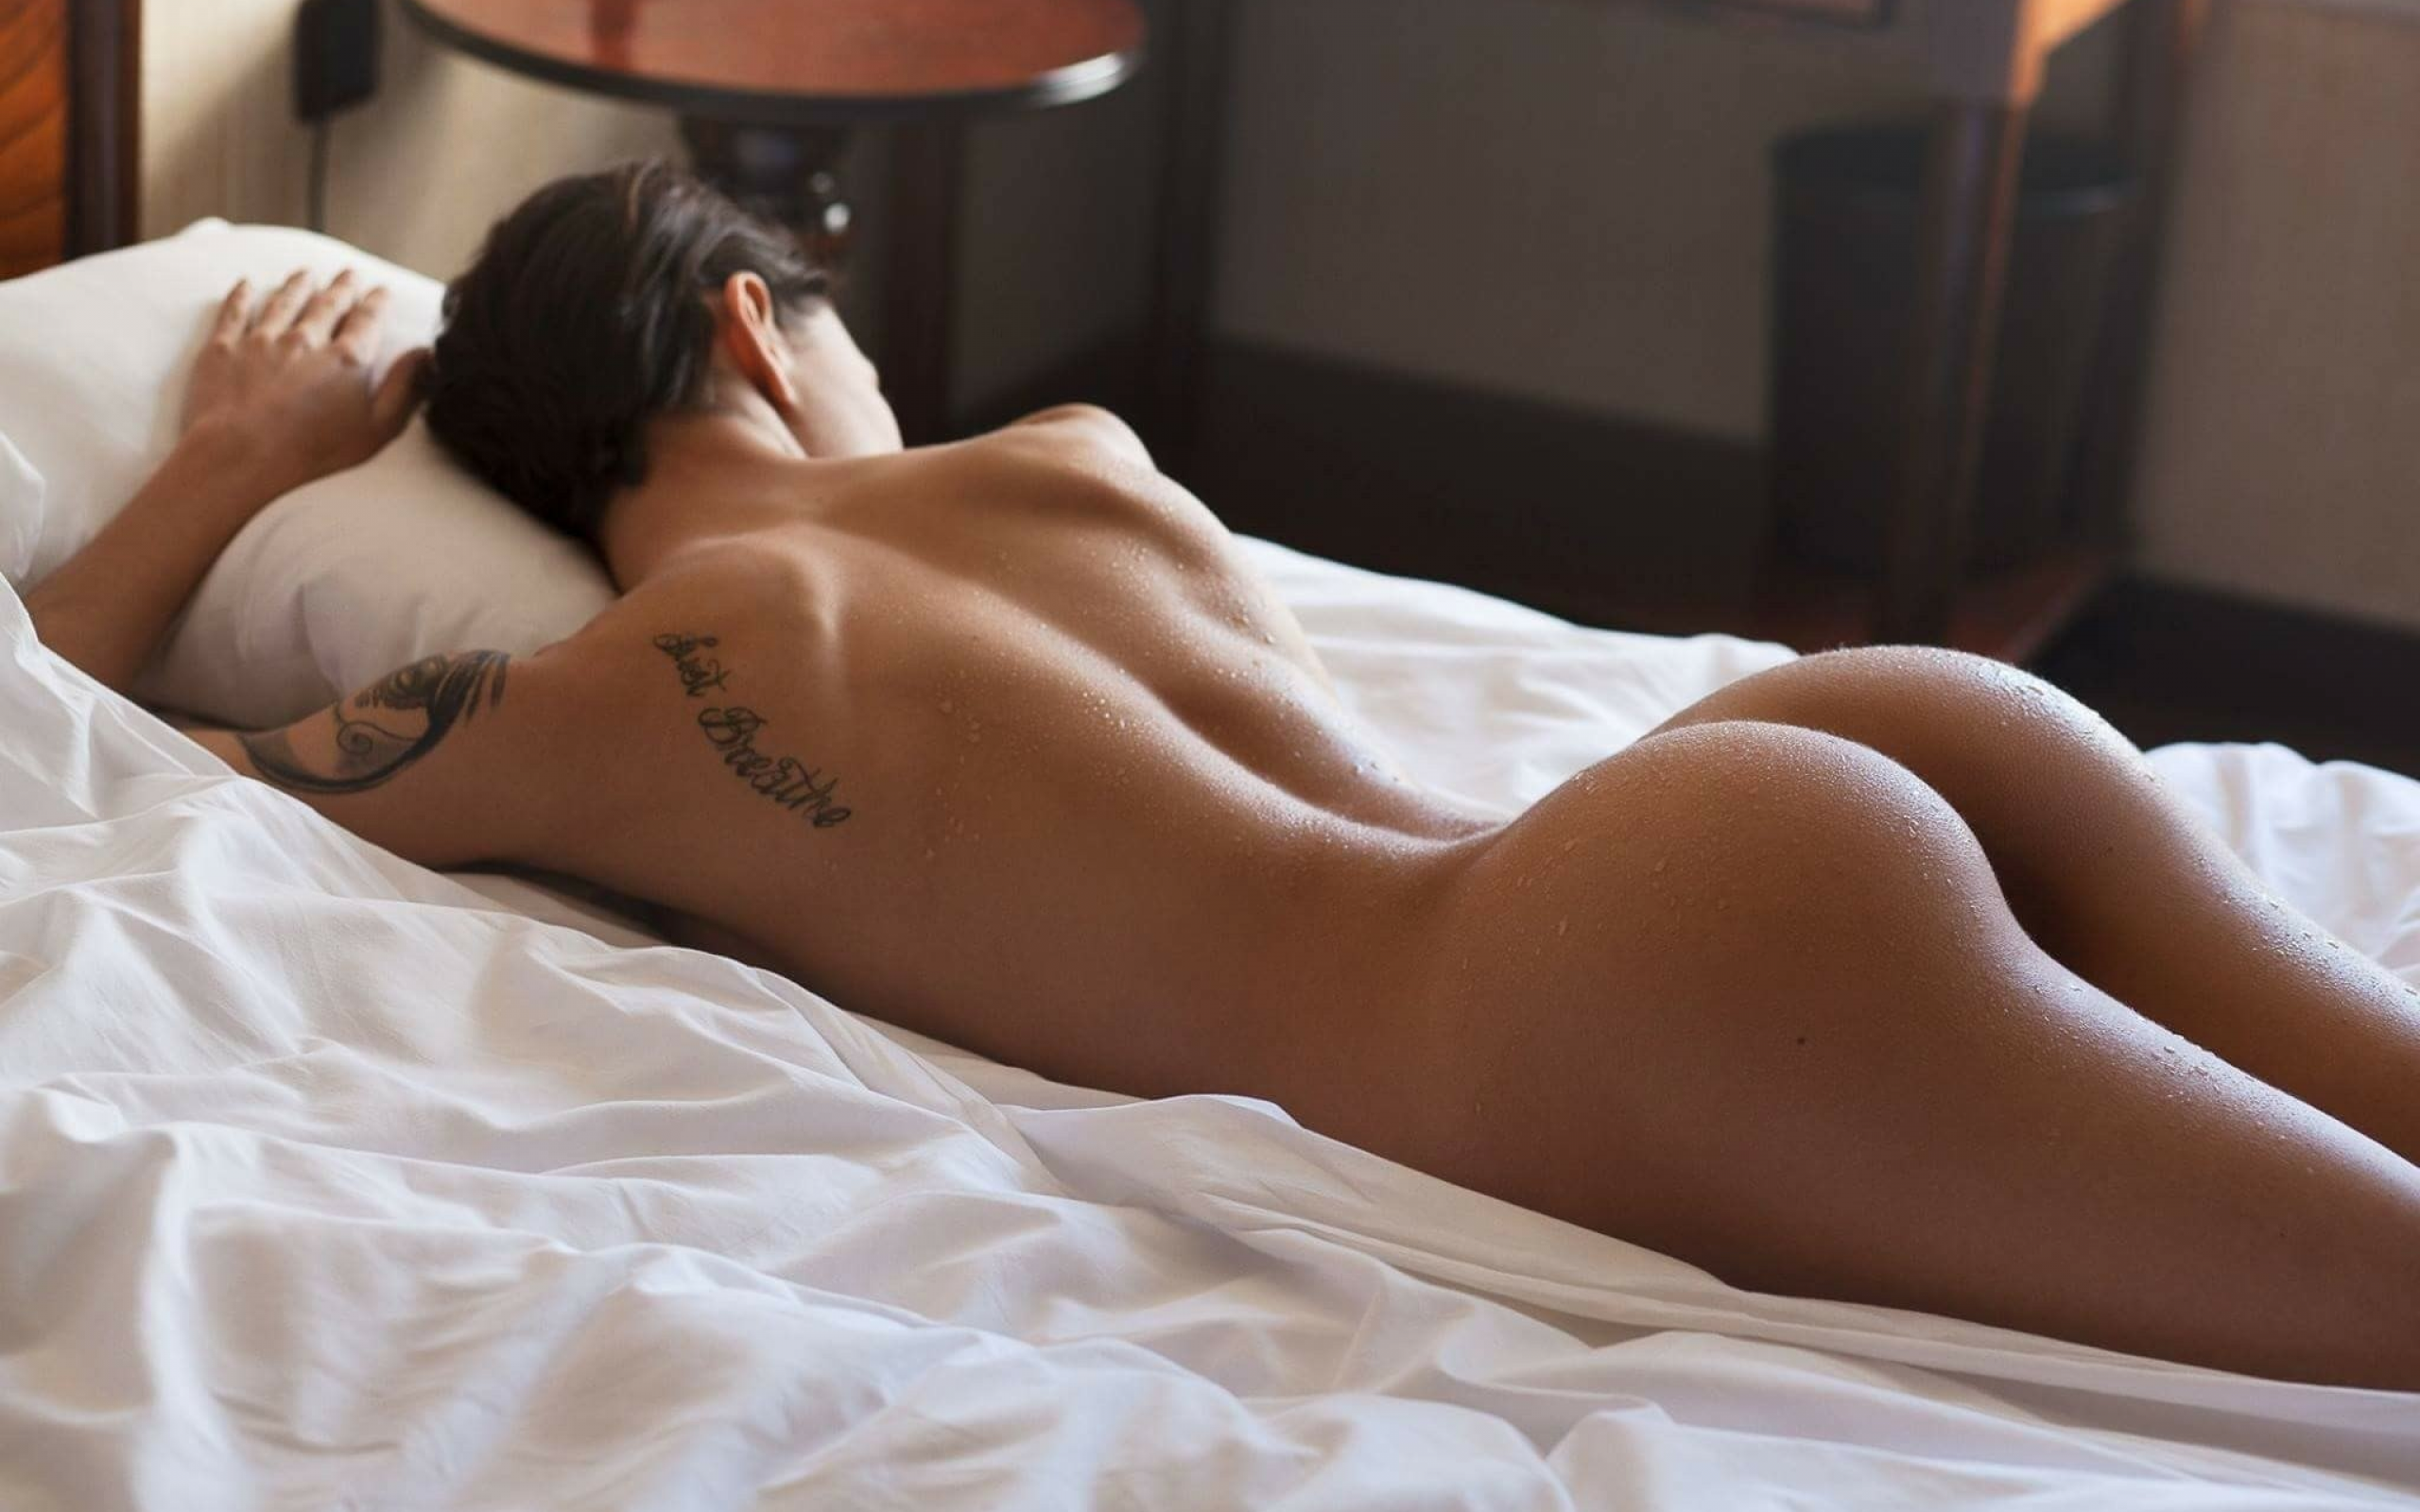 Naked on bed ass up #9